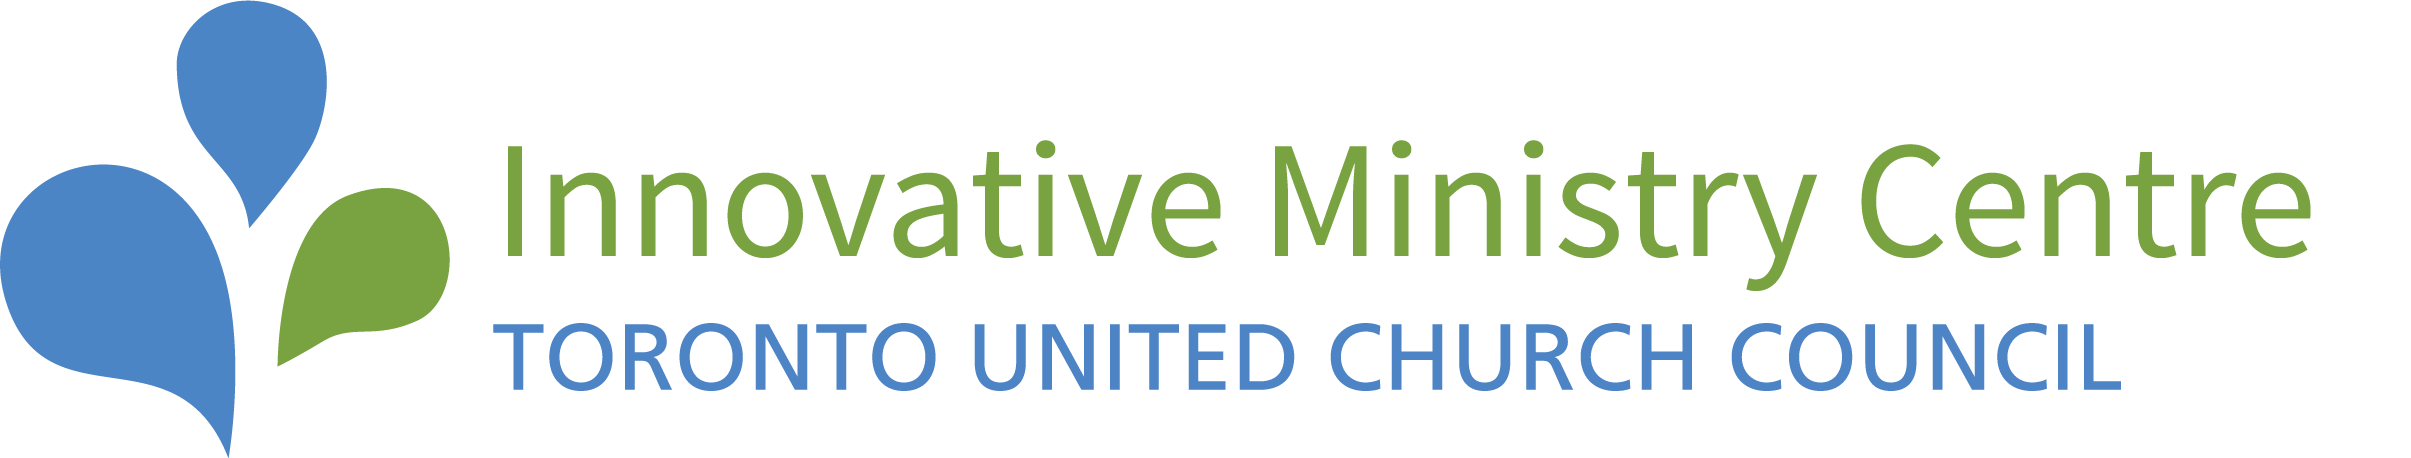 Innovative Ministry Centre